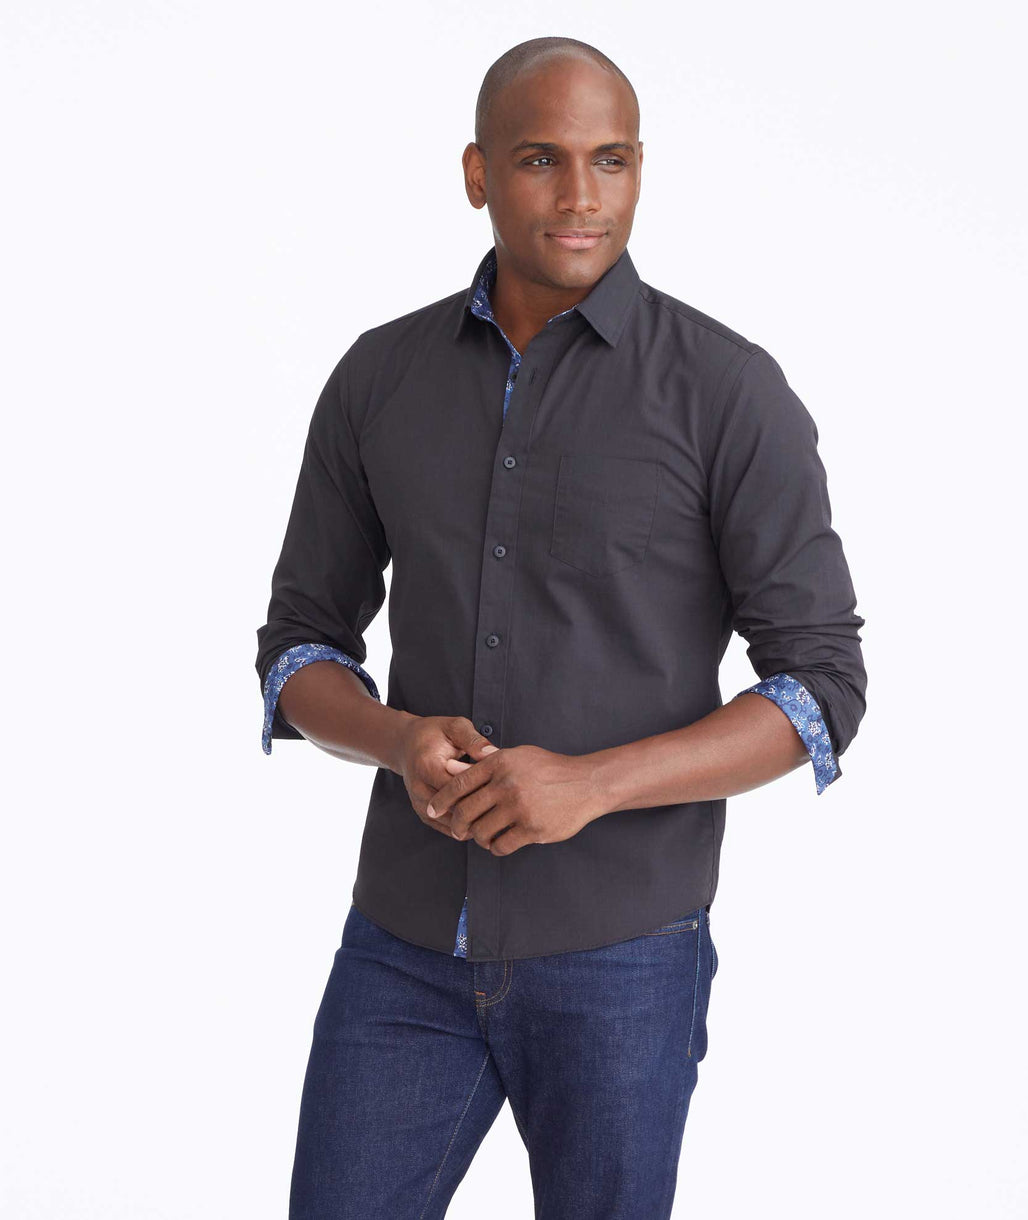 Model wearing a Black Classic Cotton Moreau Shirt